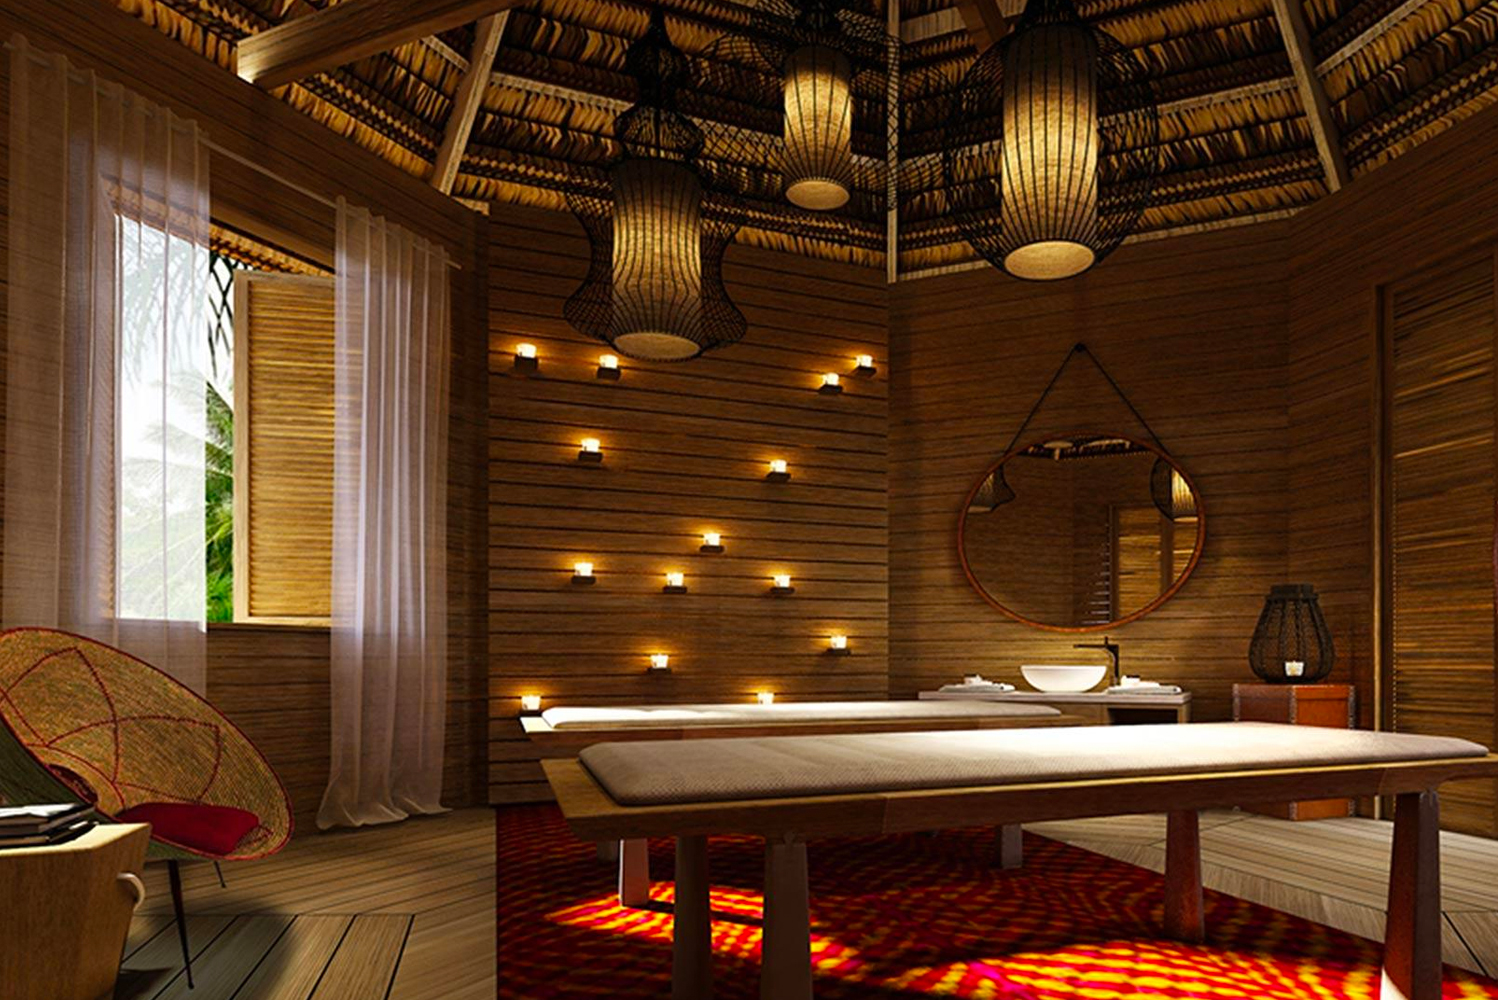 Kempinski The Spa at Cabrits Resort & Spa Kempinski Dominica offers 1,700 square meters (18,299 square feet) of spa facilities in bungalow-style treatment rooms.